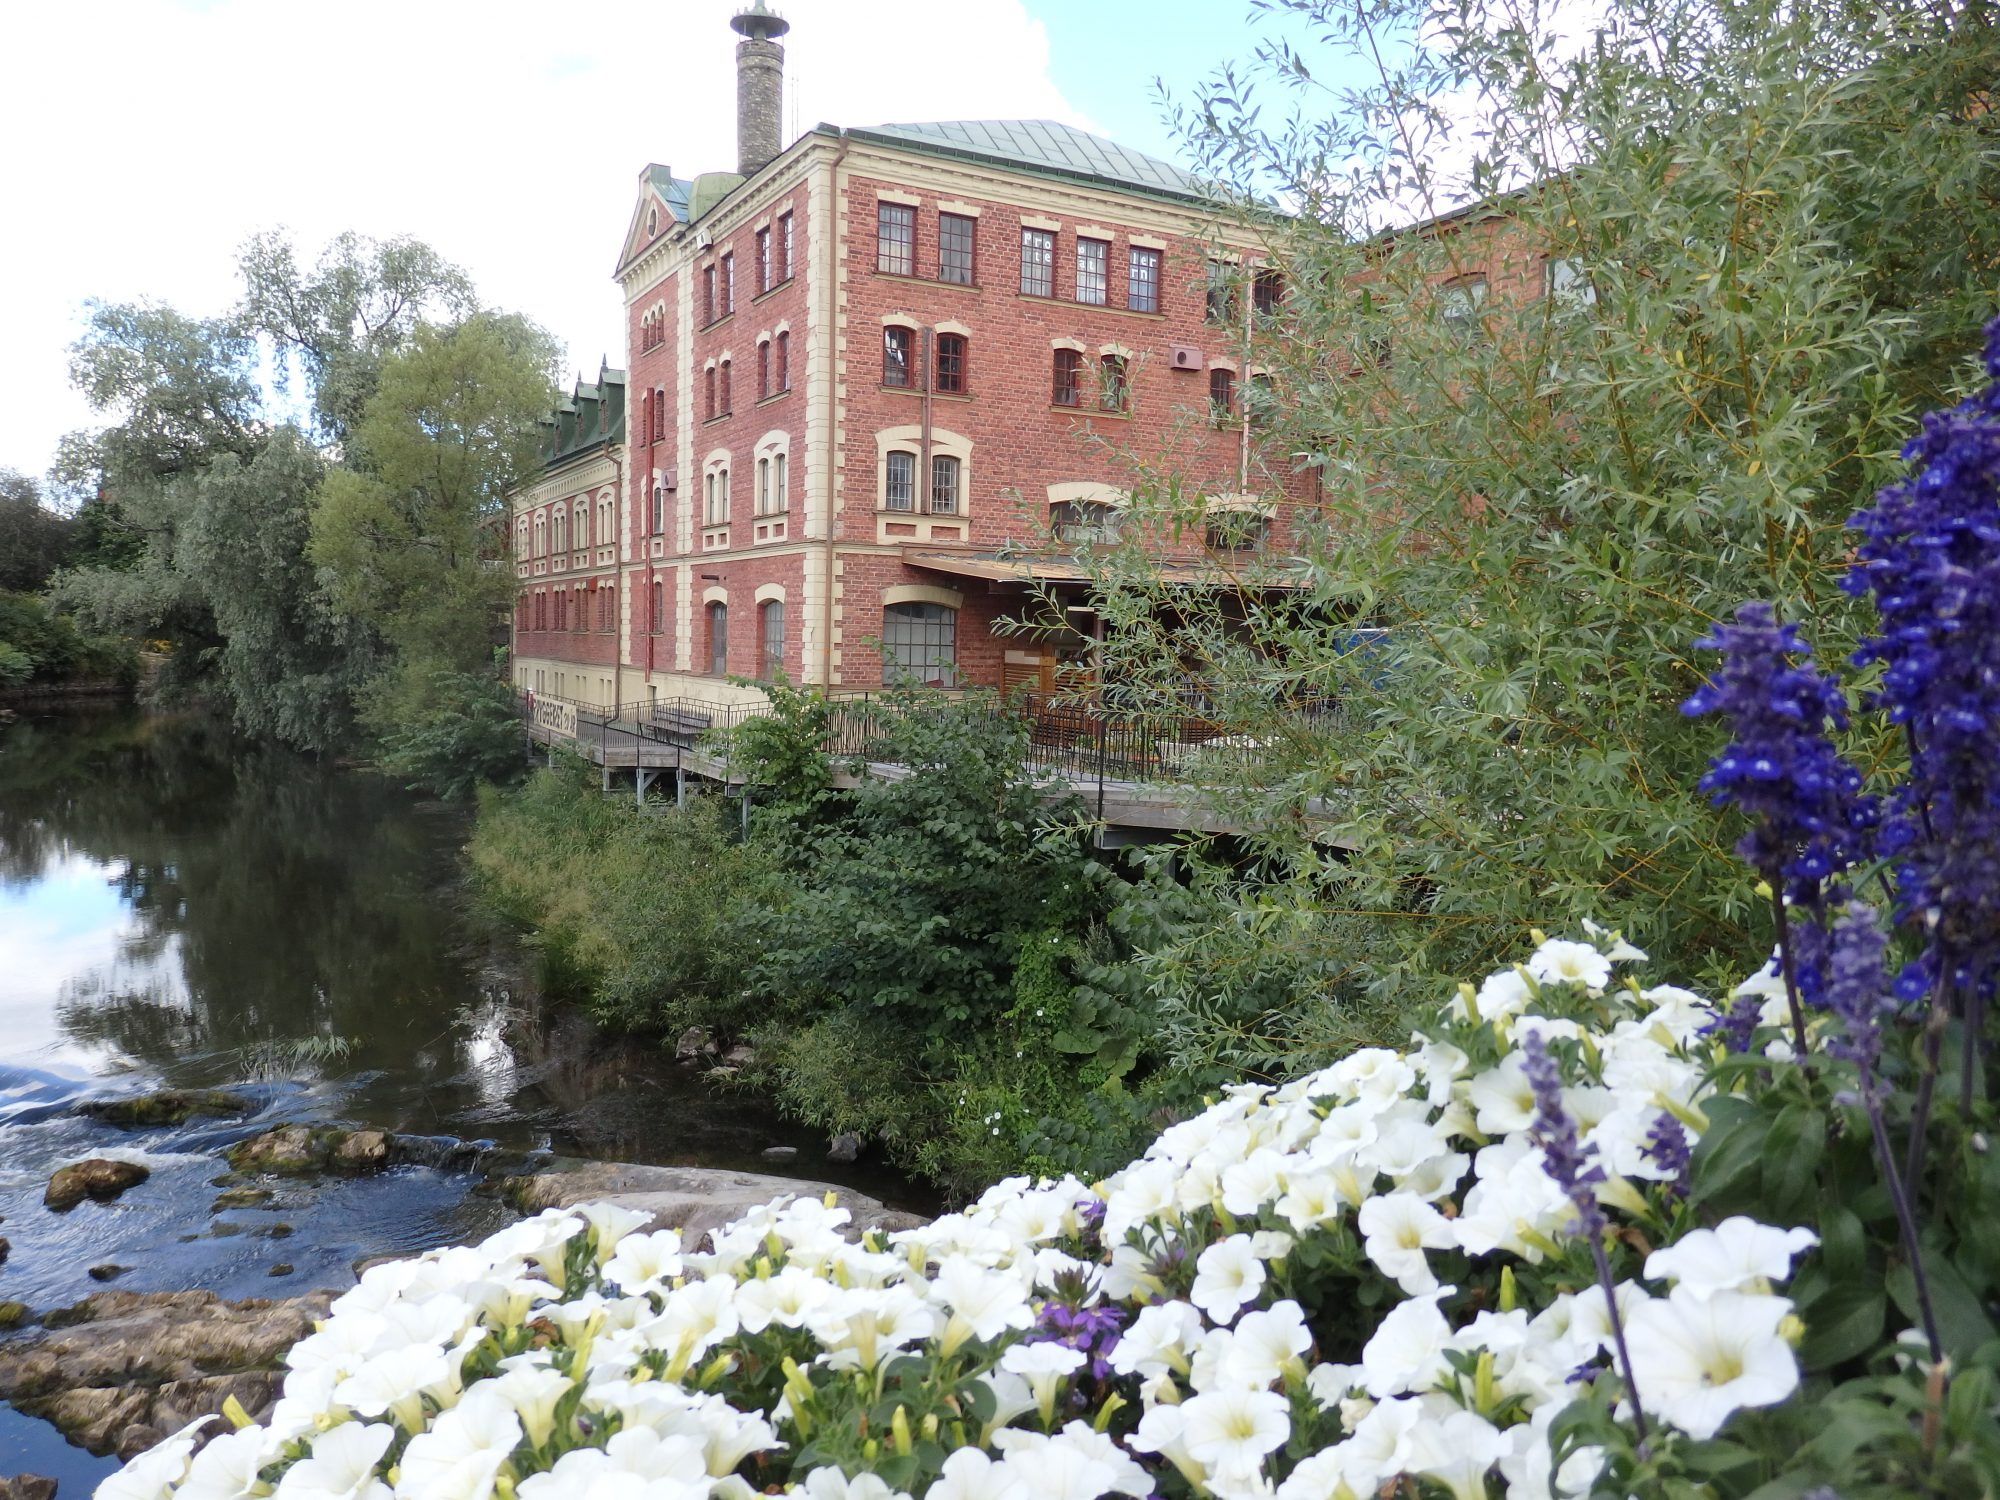 along the river in Nyköping. I think that is a repurposed factory building.